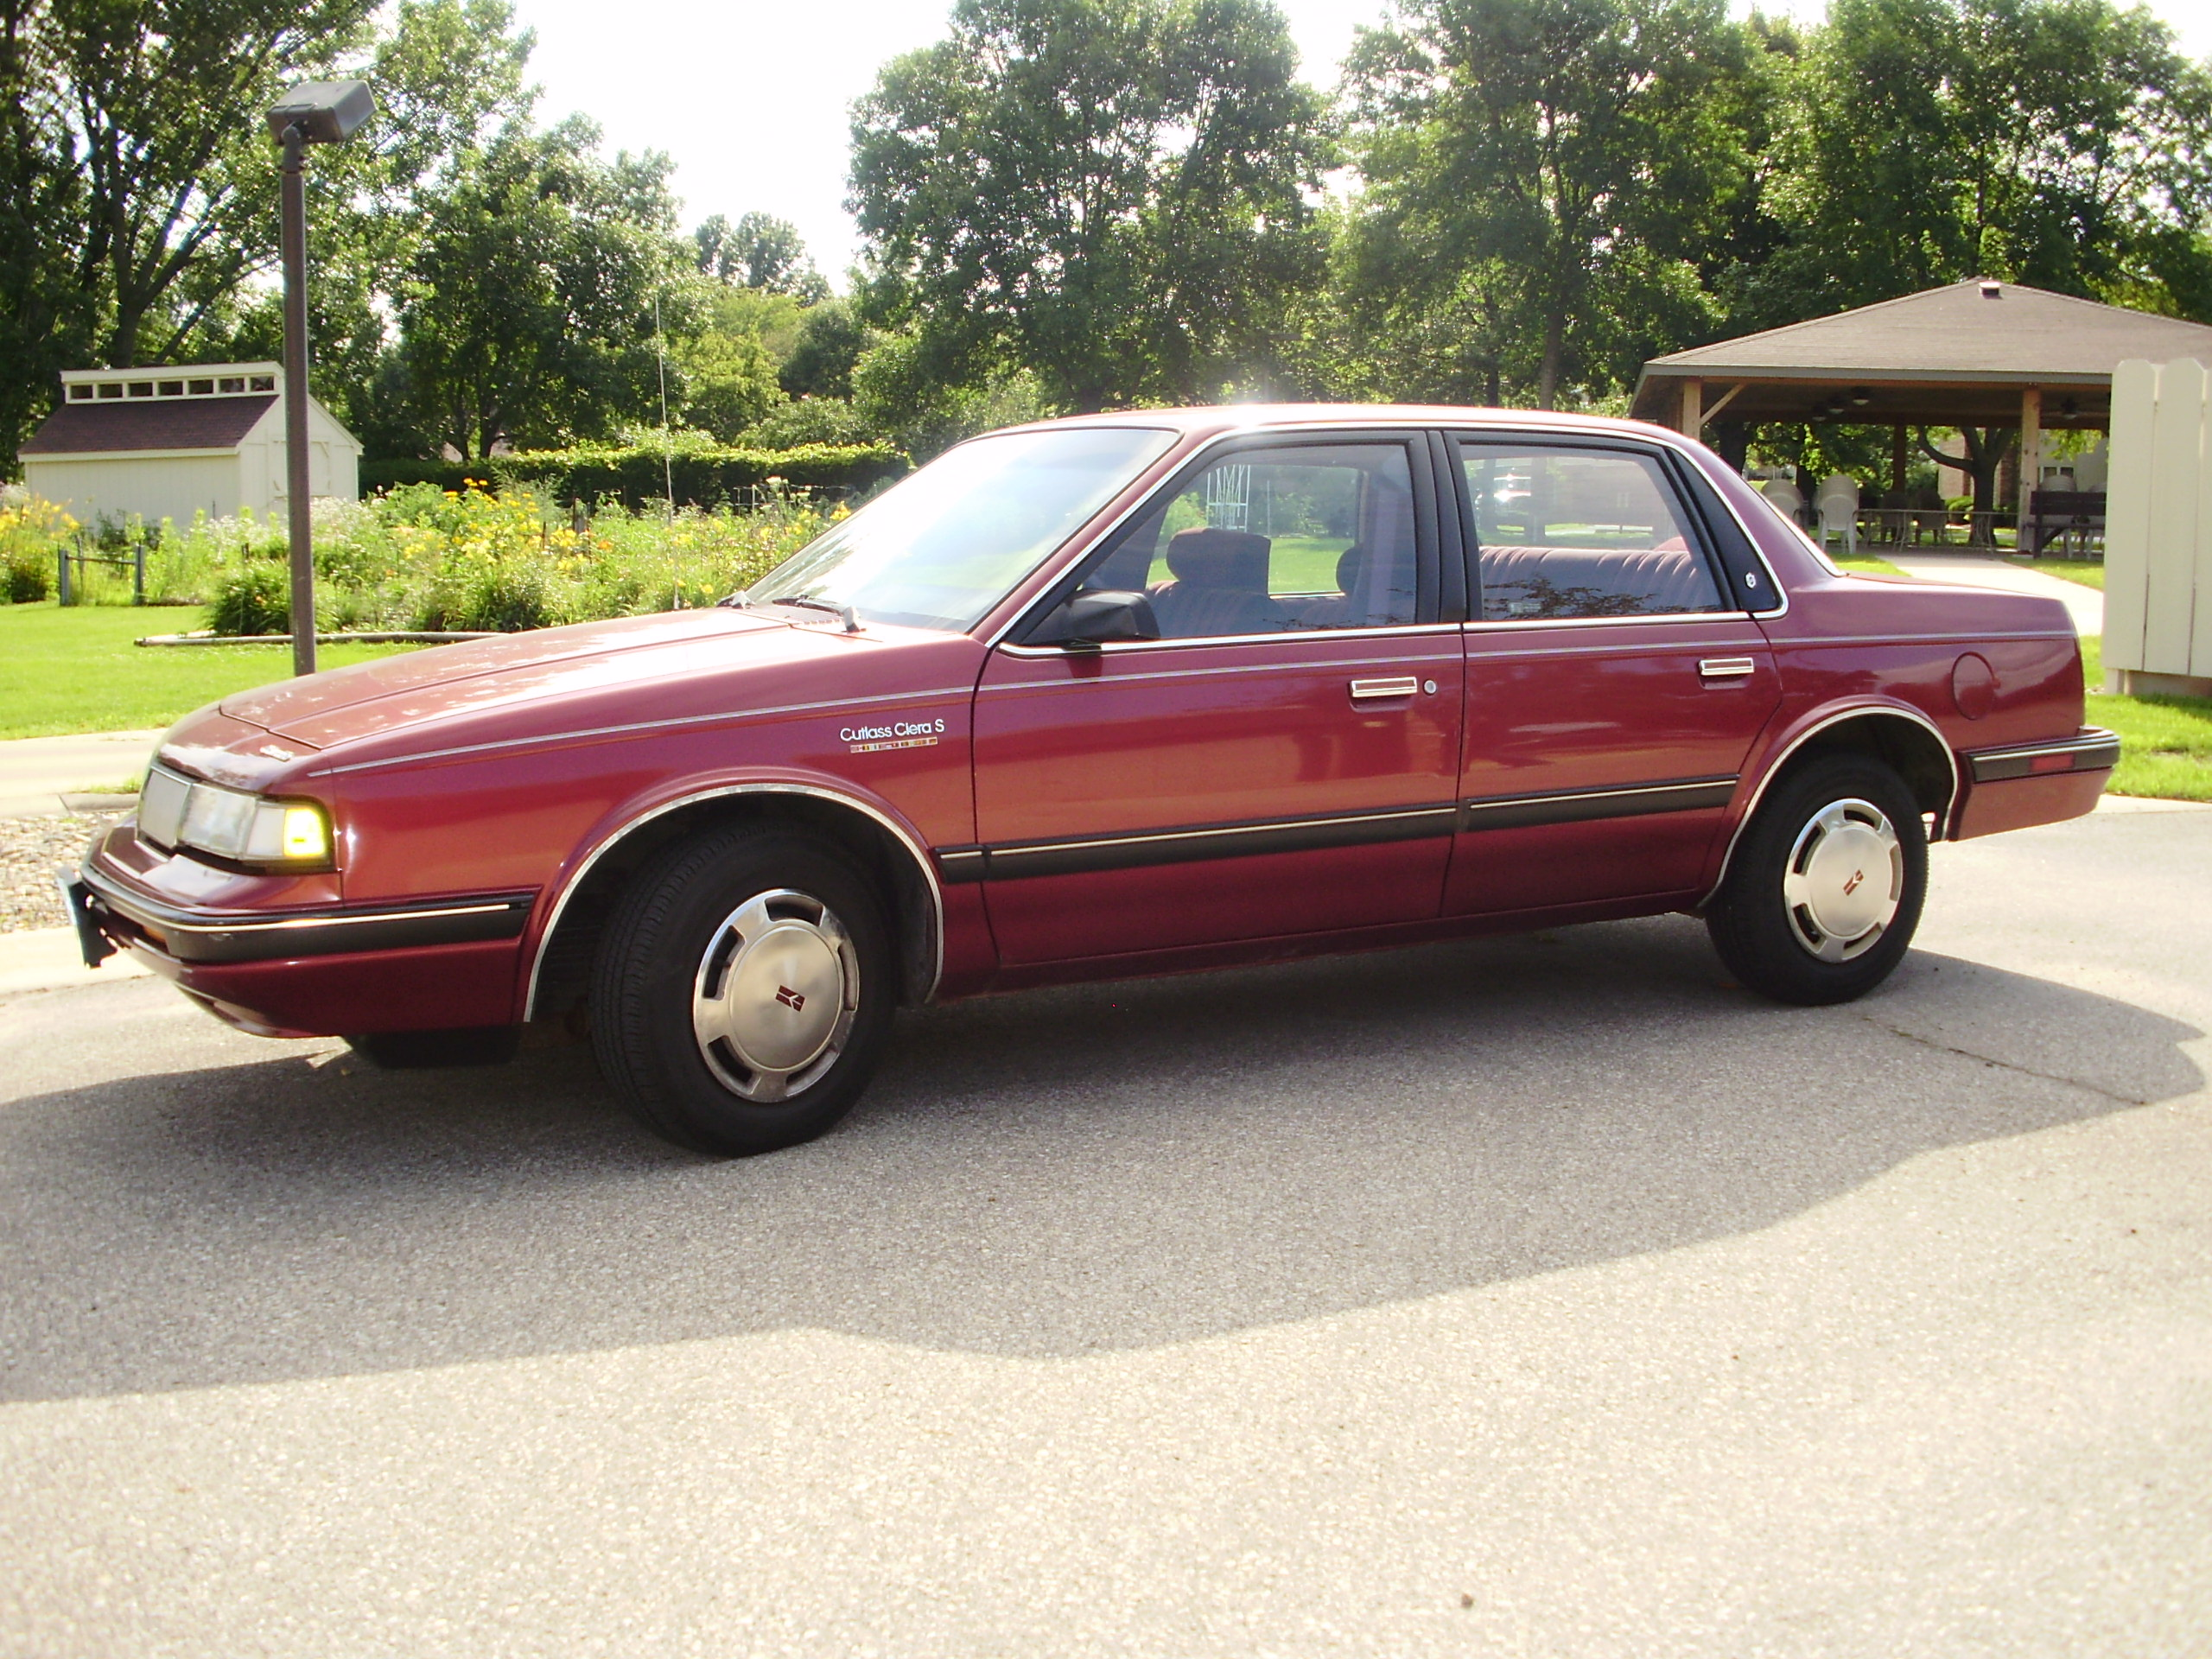 1992 Oldsmobile Cutlass Ciera #18